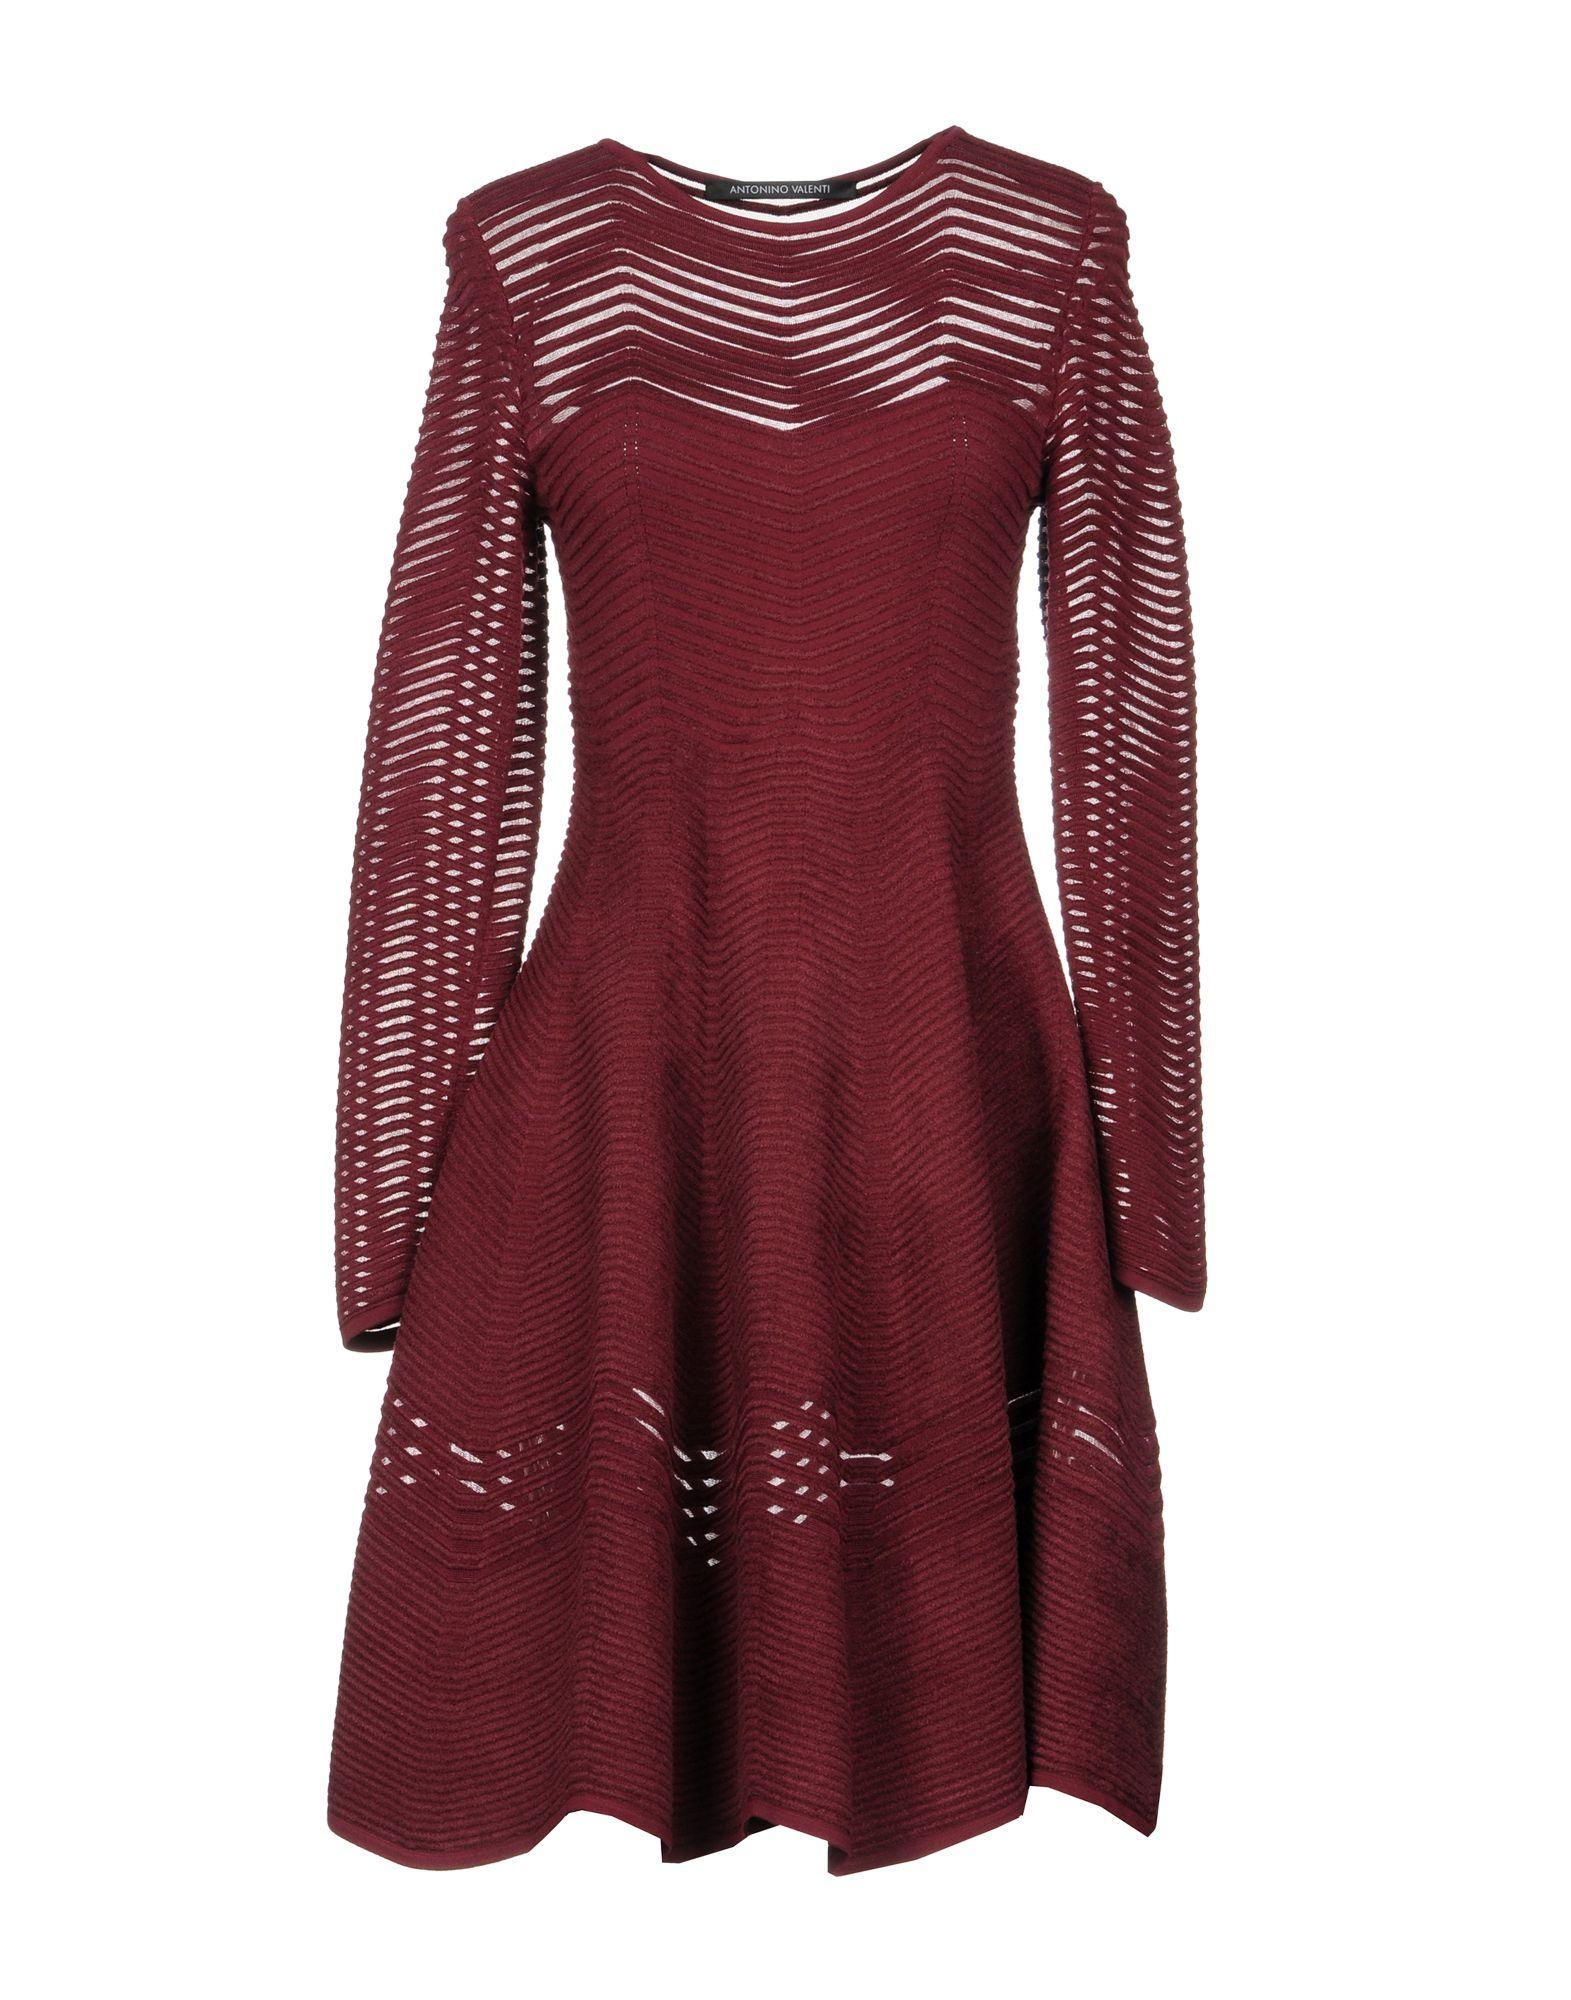 sneakers for cheap 08b8b 998af Short Dress in Maroon